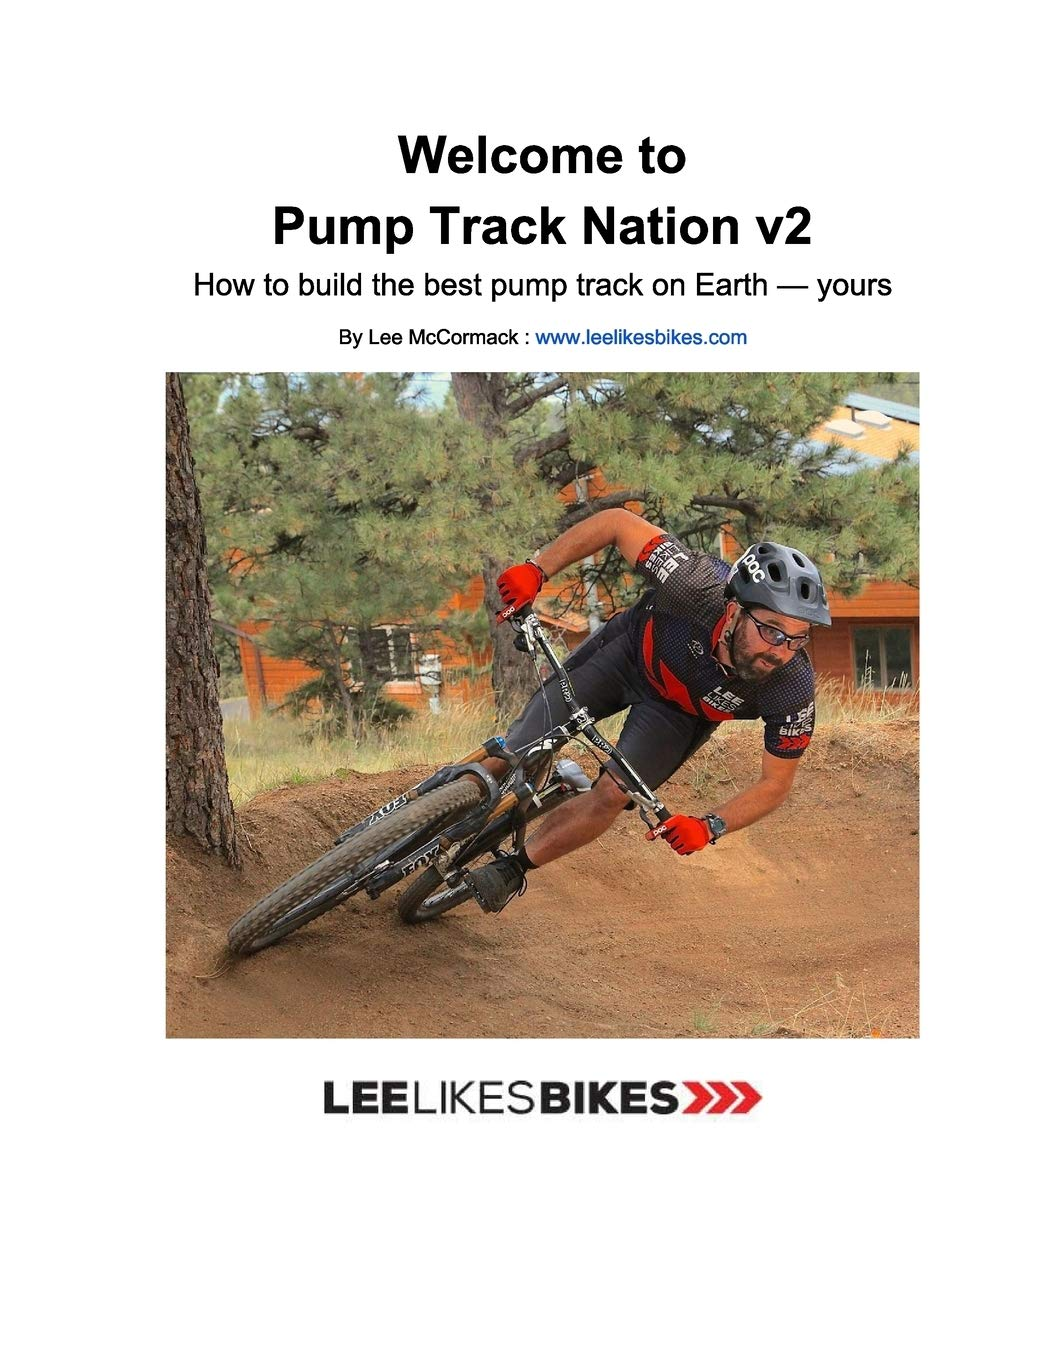 Welcome To Pump Track Nation V2  How To Build The Best Pump Track On Earth — Yours